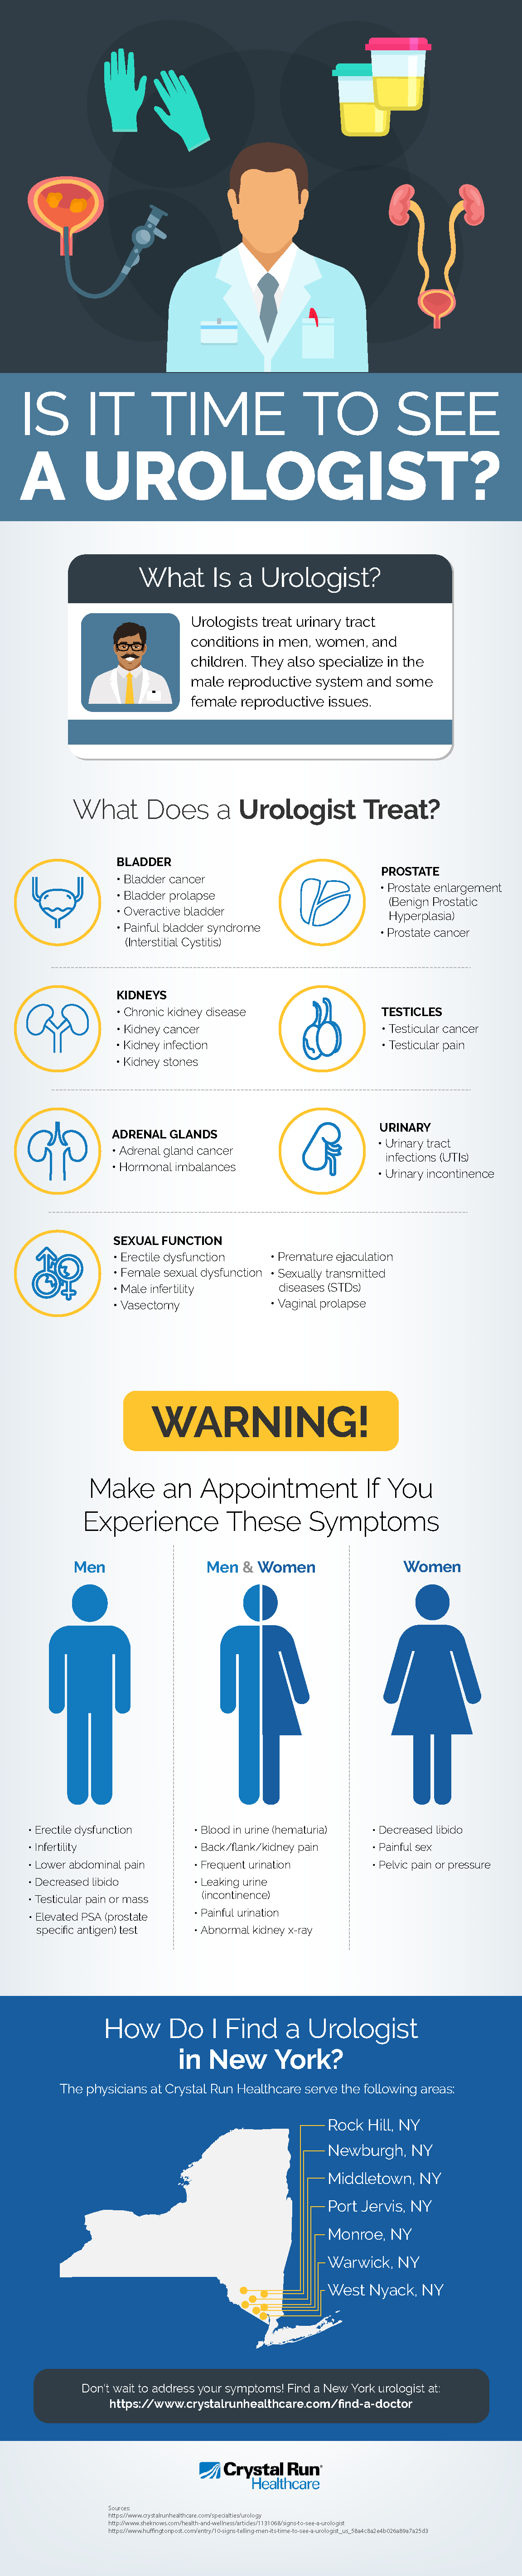 Is It Time to See a Urologist Infographic